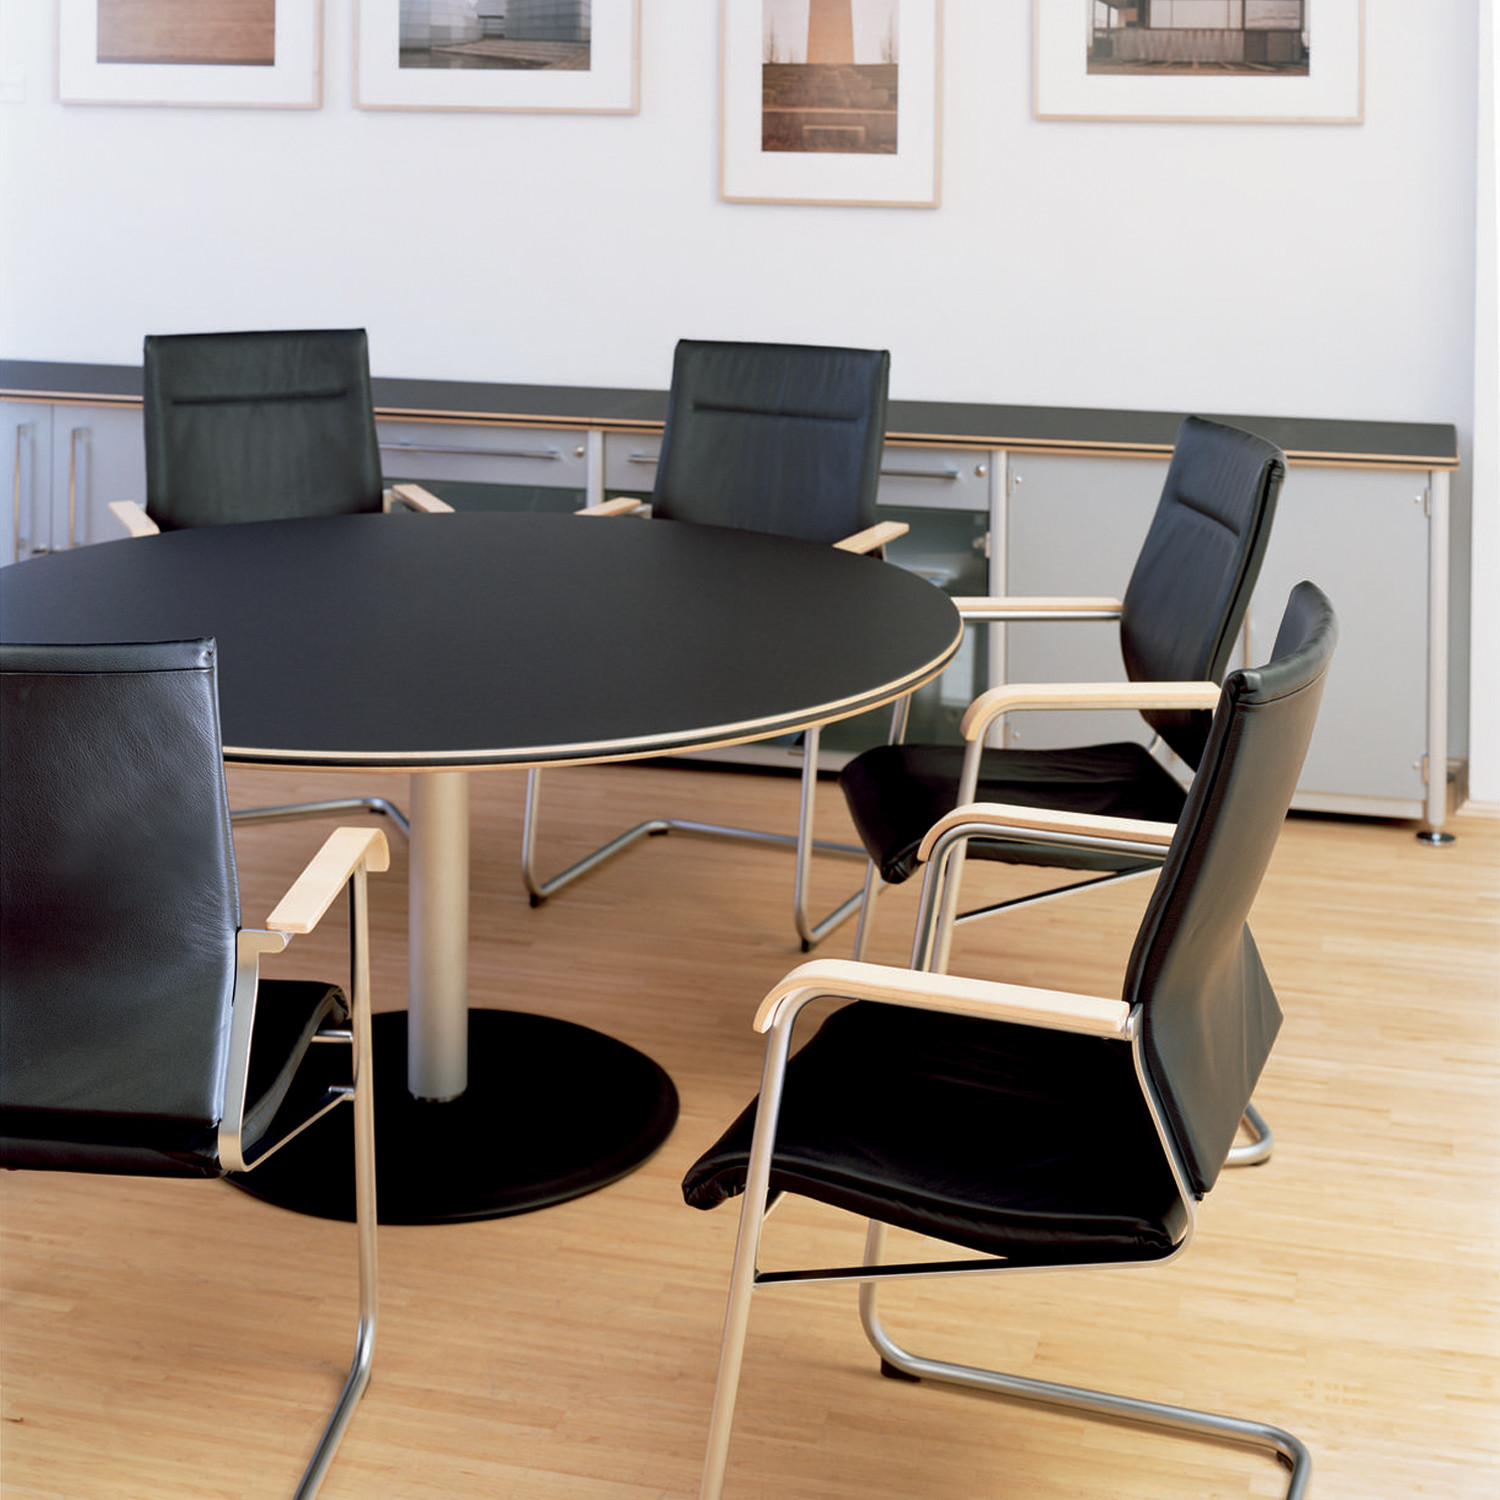 632 Range Meeting Table - black tabletop